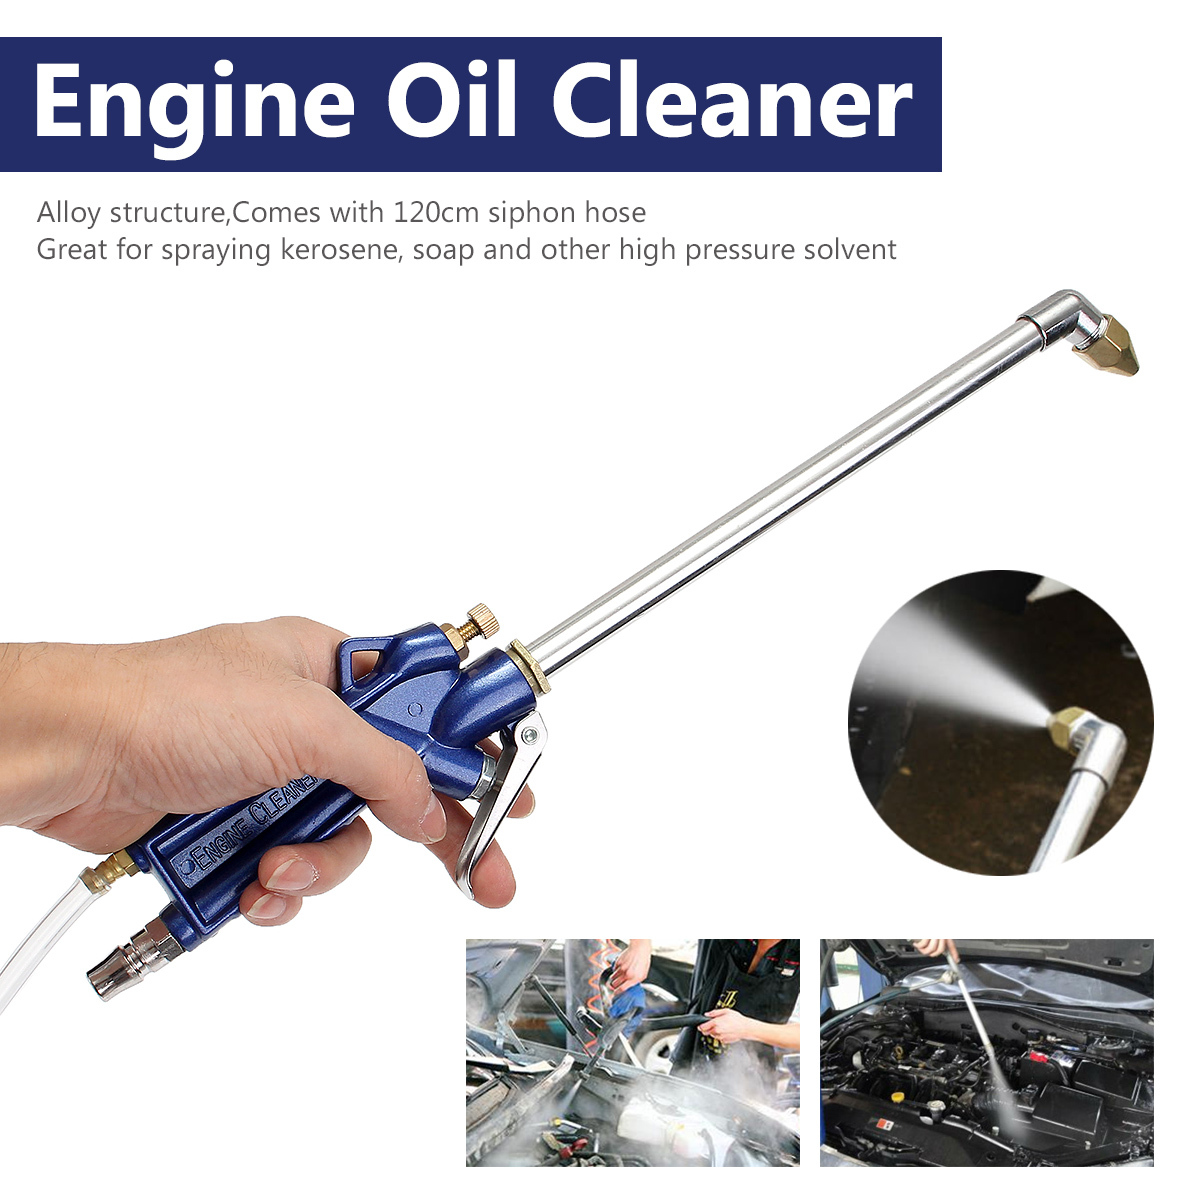 400mm Engine Oil Cleaner <font><b>Tool</b></font> Car <font><b>Auto</b></font> Water Cleaning Gun Pneumatic <font><b>Tool</b></font> with 120cm Hose Machinery Parts Alloy Engine Care image